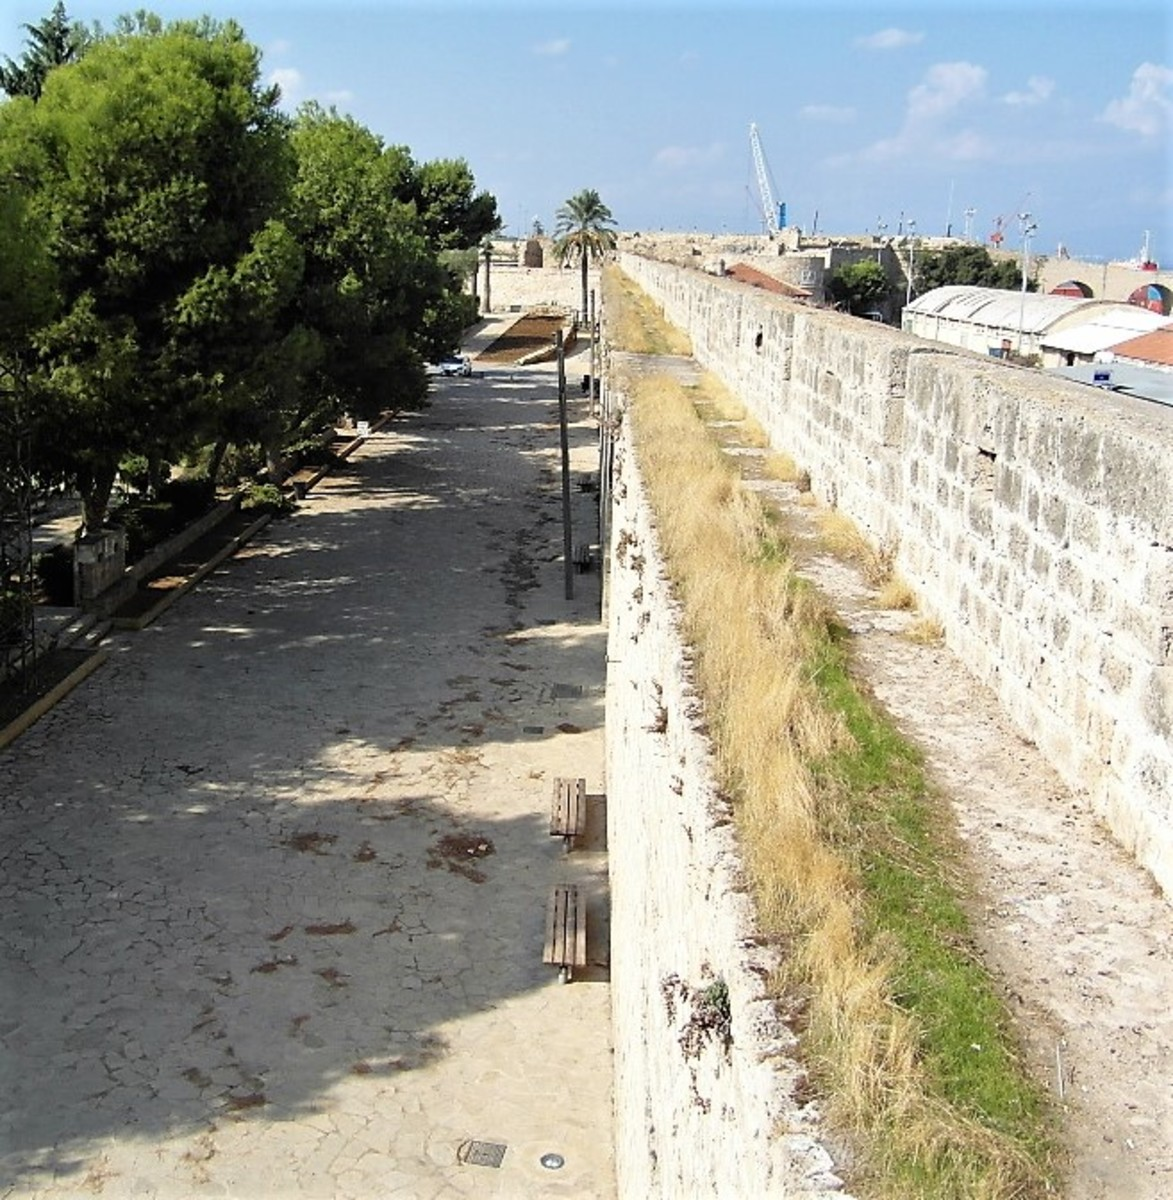 View from the Sea Gate along the City Wall.